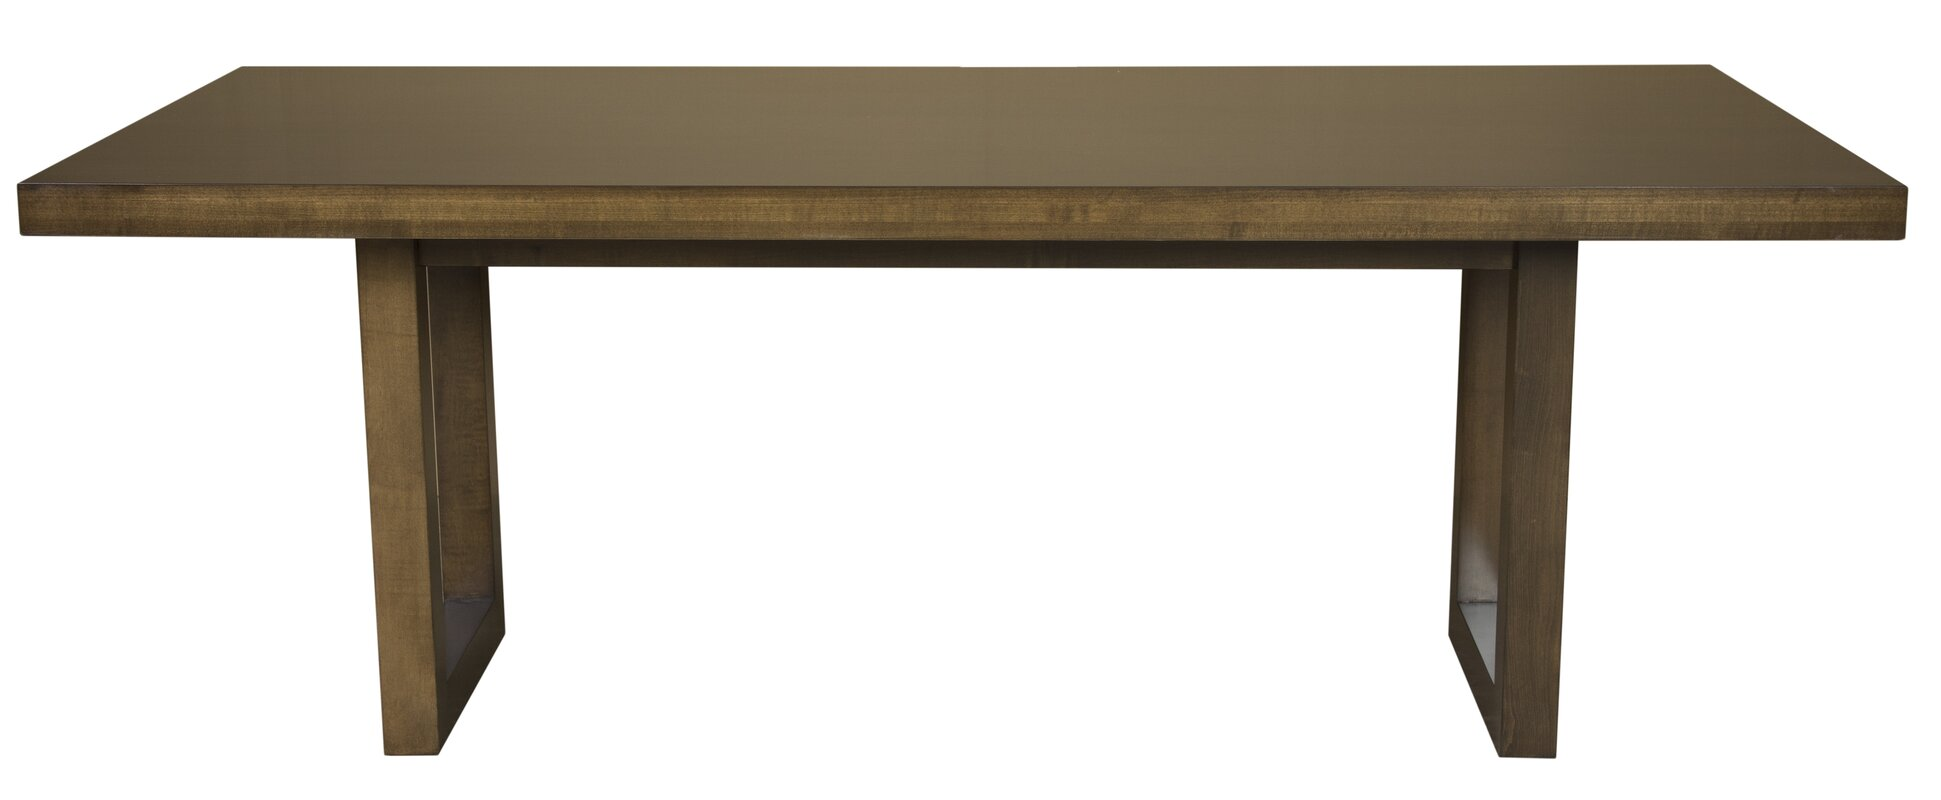 Fusco Maple Straight Edge Solid Wood Dining Table